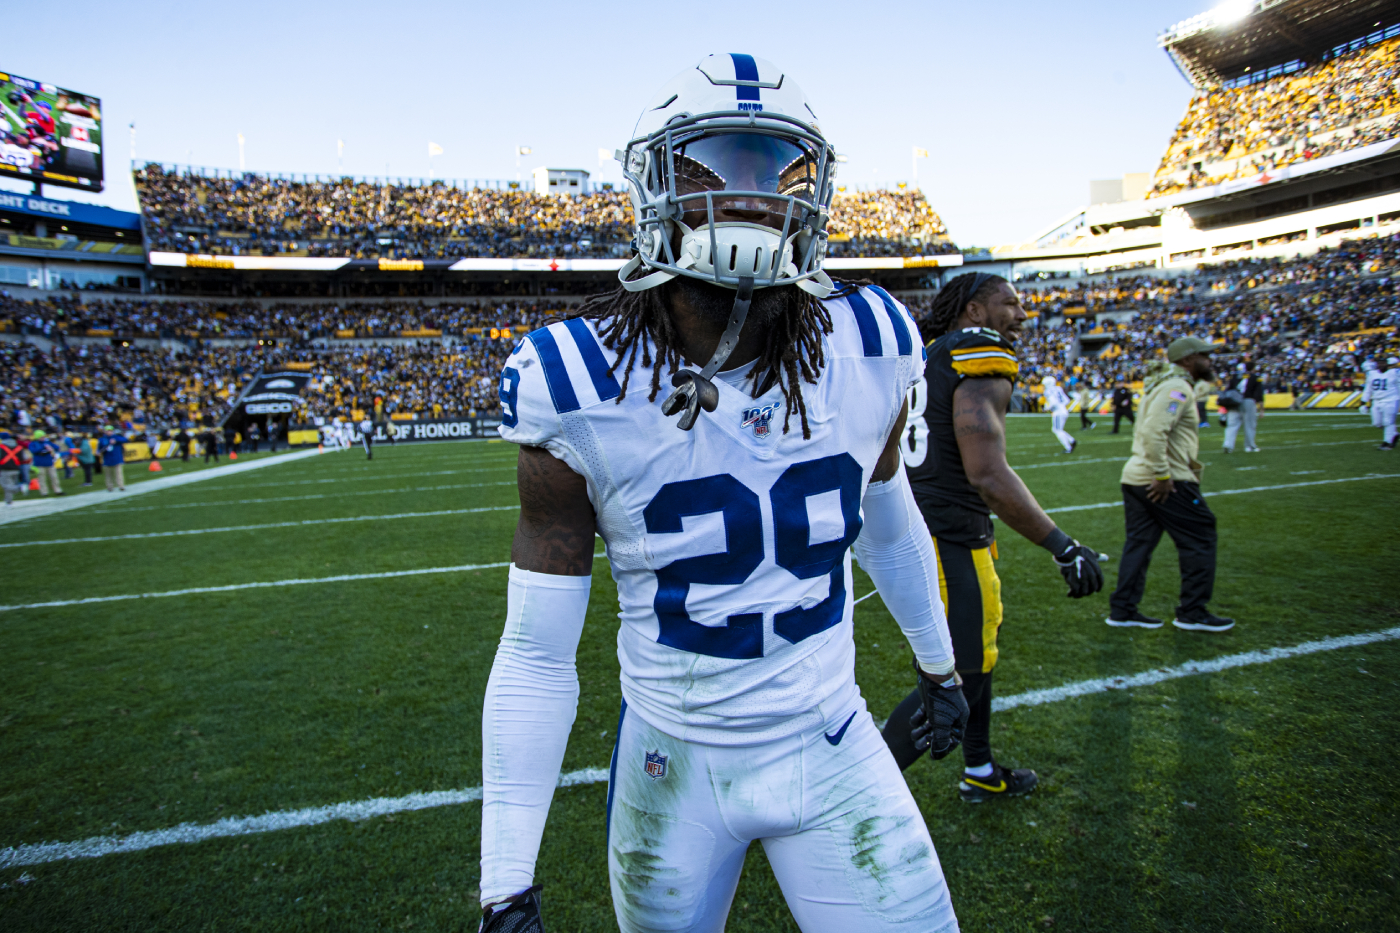 Malik Hooker has shown glimpses of unreal potential for the Colts. However, he has also had horrible luck so far in his NFL career.